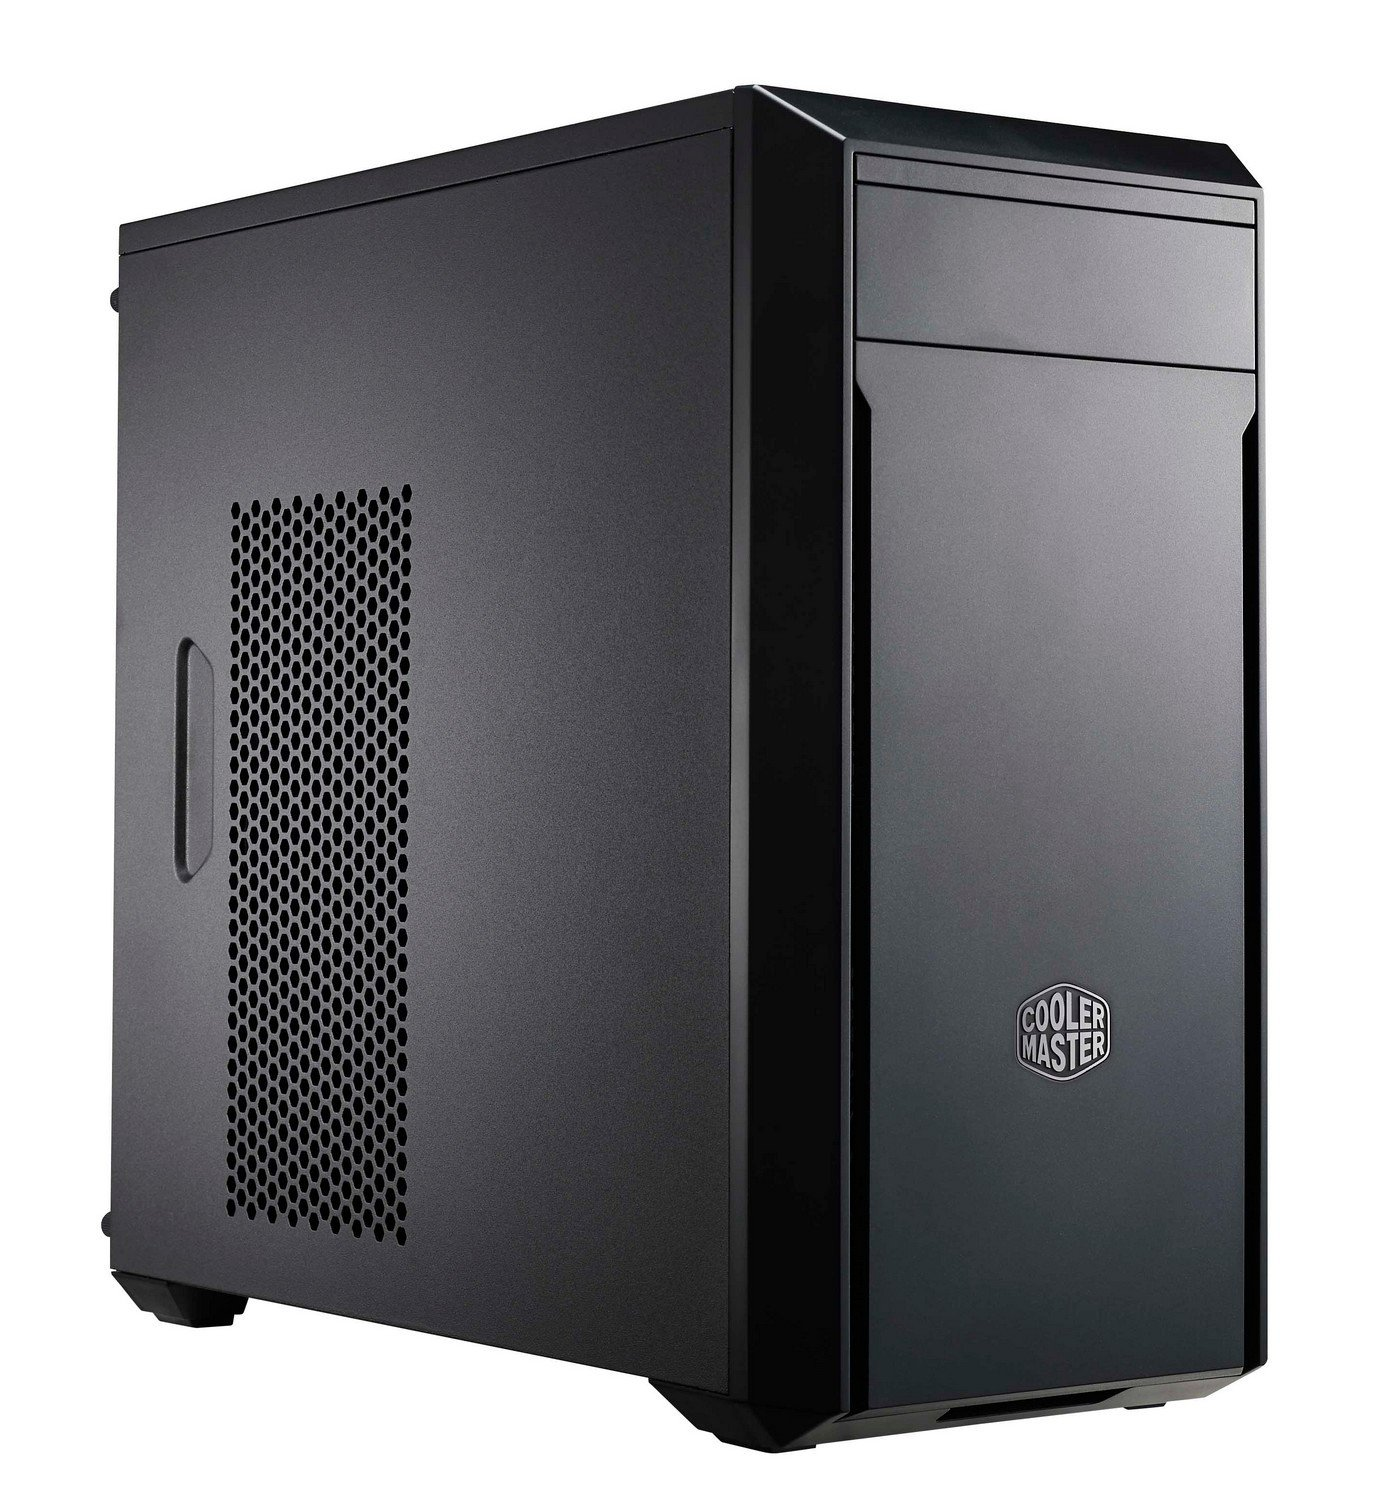 CPU Solutions Express Business 8th Gen Core i3 3.6GHz Quad Core PC with Windows 10 Pro, 8GB RAM, 1TB HDD